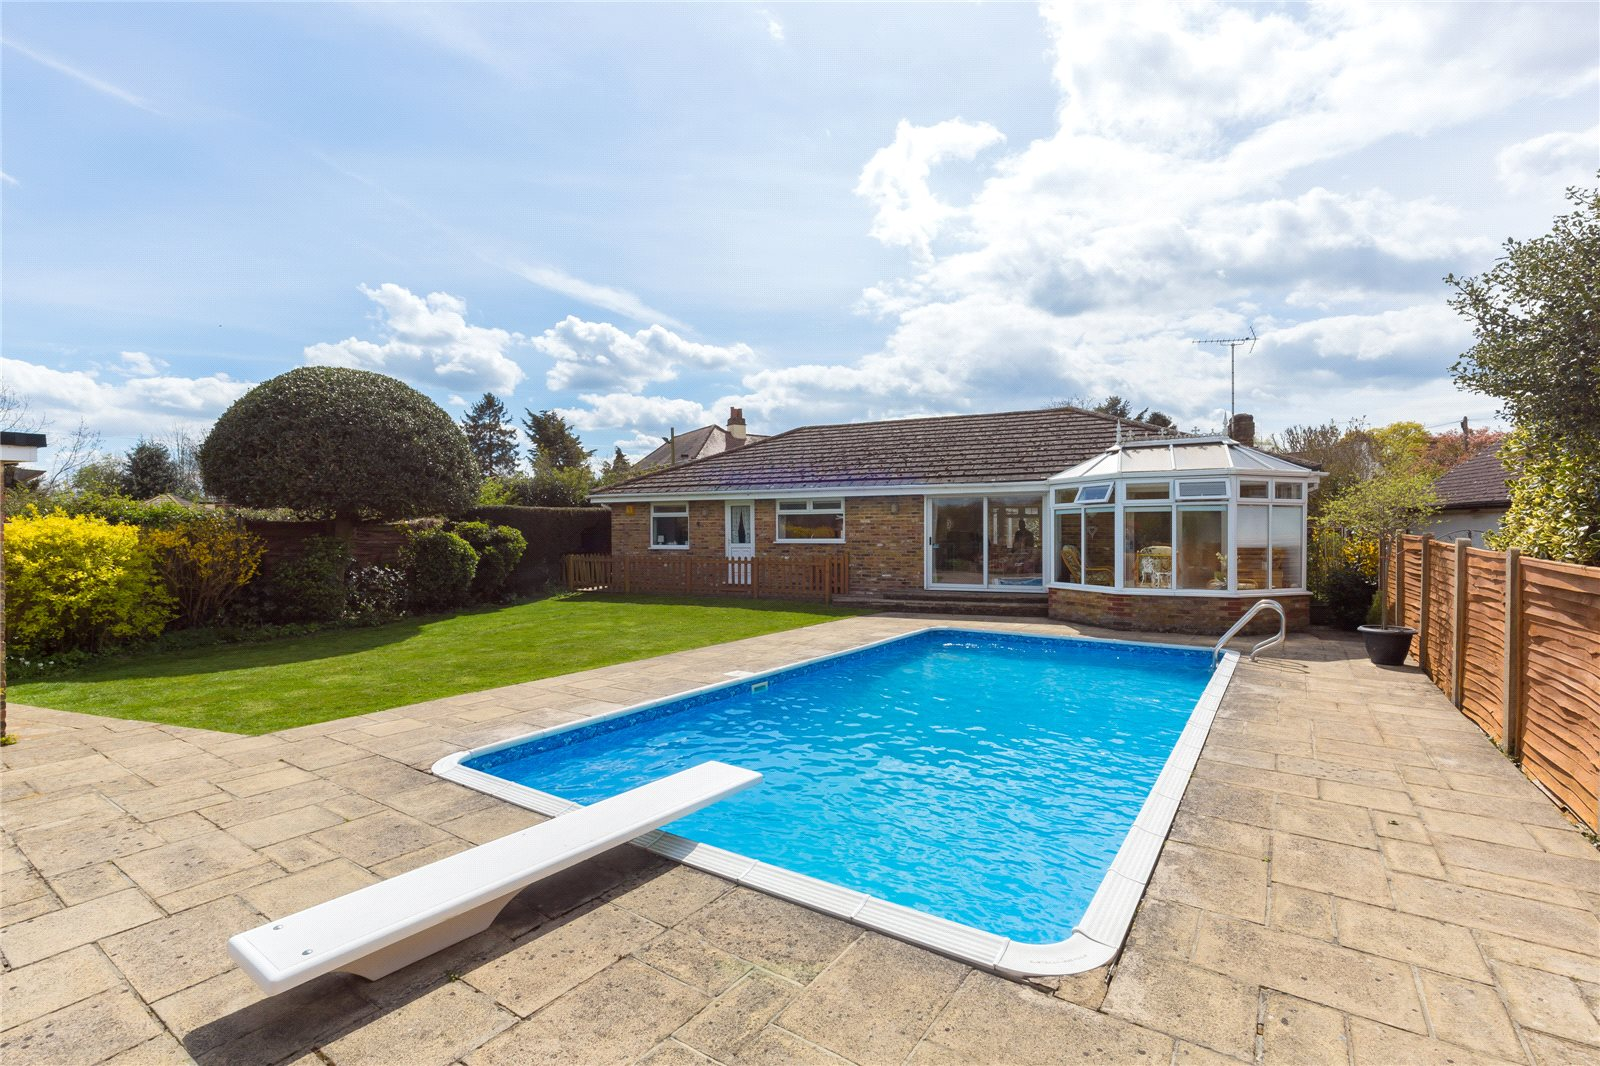 Additional photo for property listing at Denham Lane, Chalfont St Peter, Buckinghamshire, SL9 Chalfont St Peter, Ingiltere